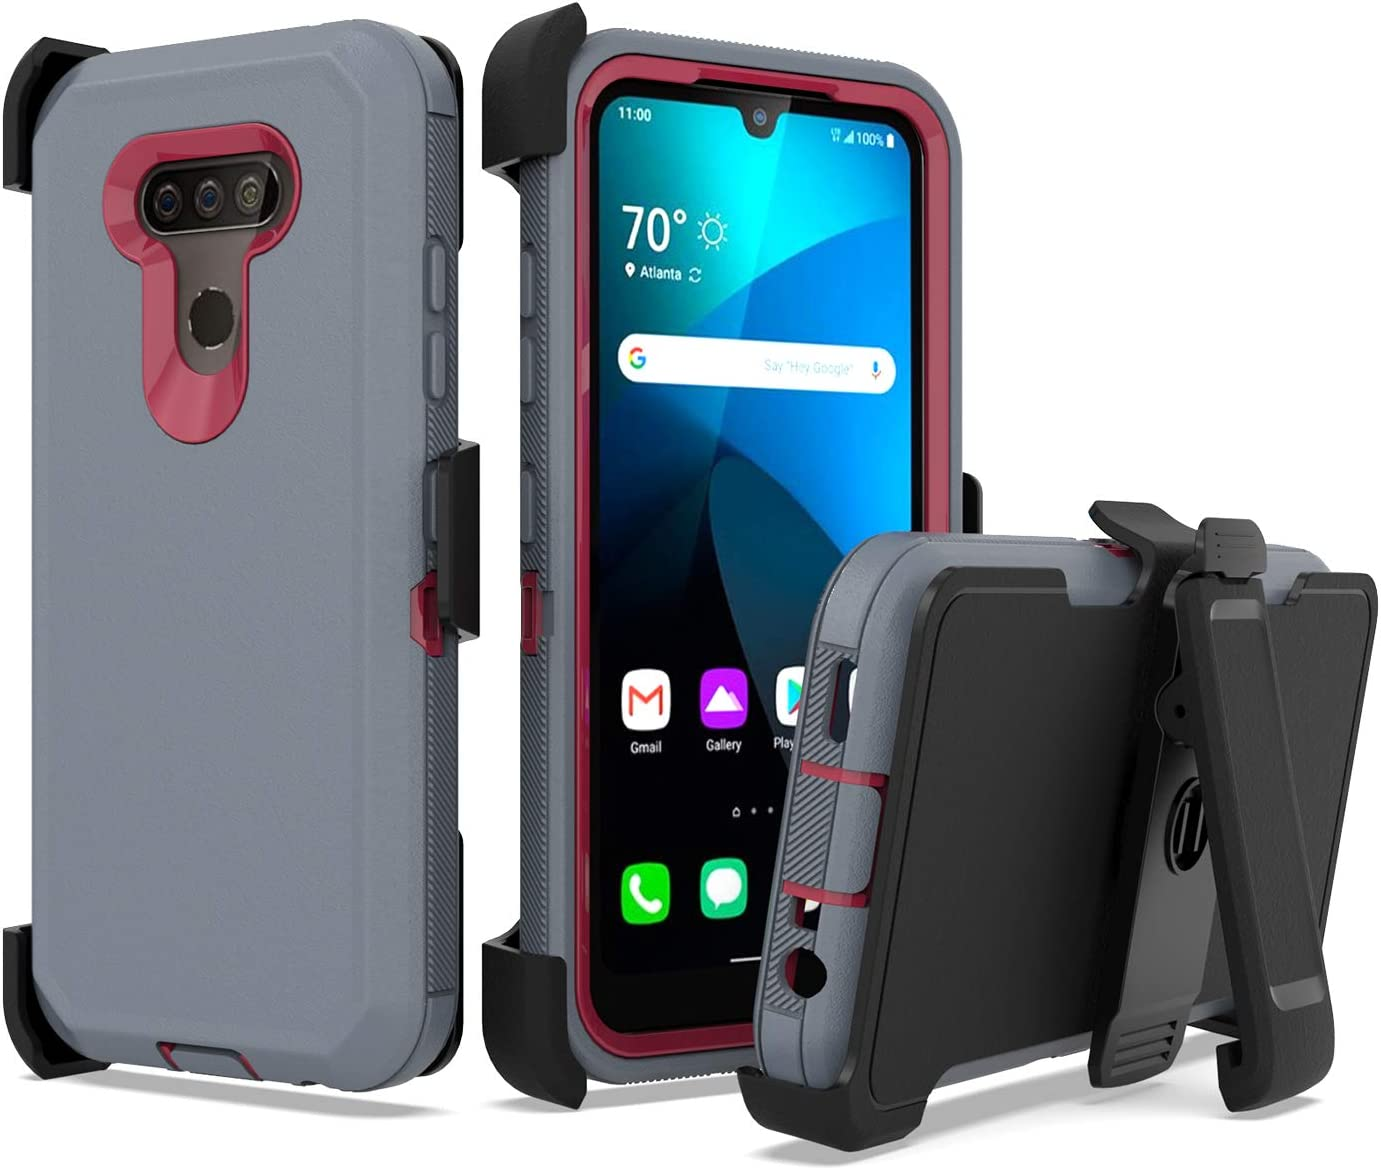 UNC Pro 3 in 1 Belt Clip Holster Cell Phone Case for LG Harmony 4/ LG Xpression Plus 3, Heavy Duty Hybrid Shockproof Bumper Case with Kickstand, Grey/Red